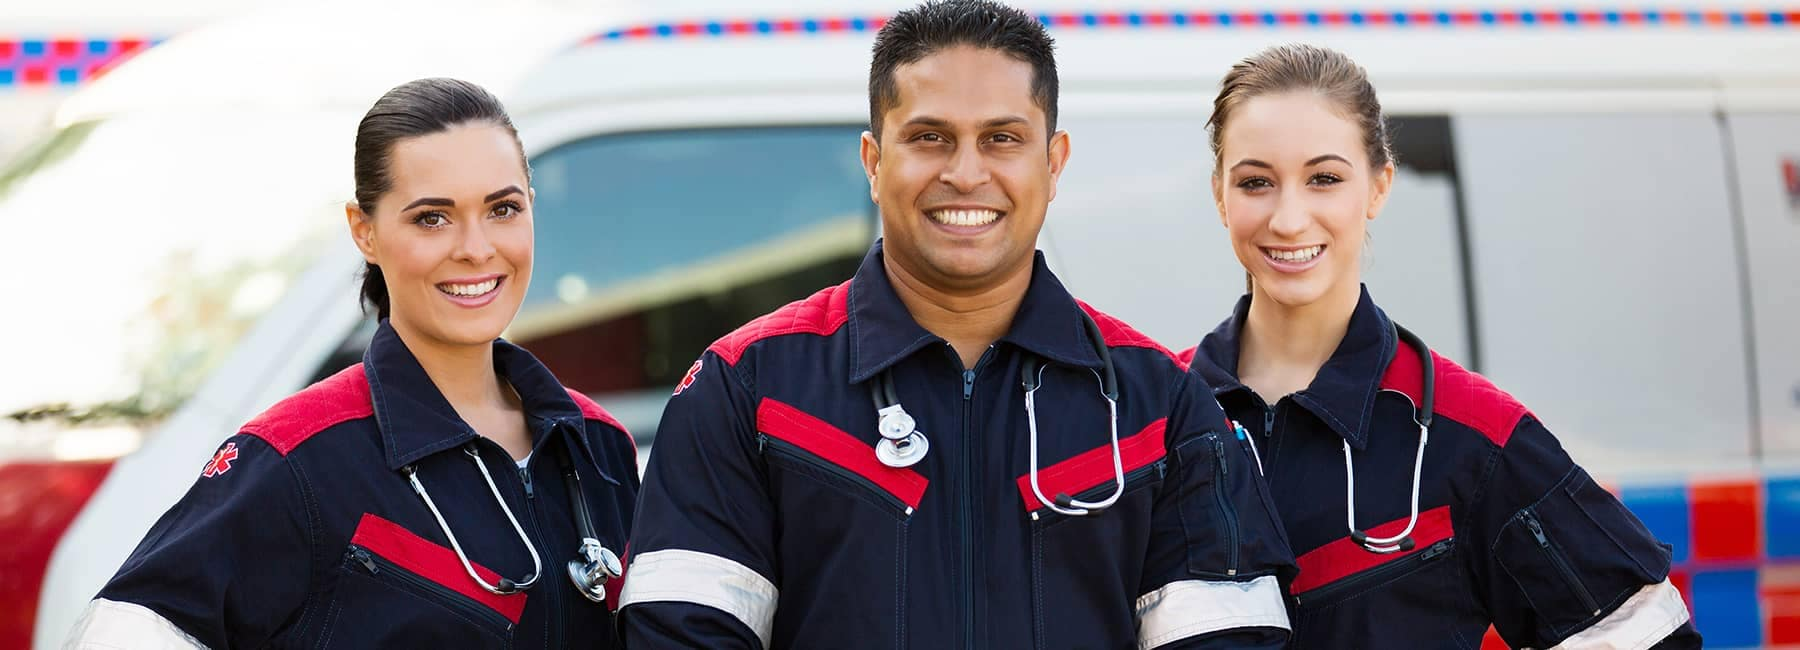 smiling first responders wearing stethoscopes